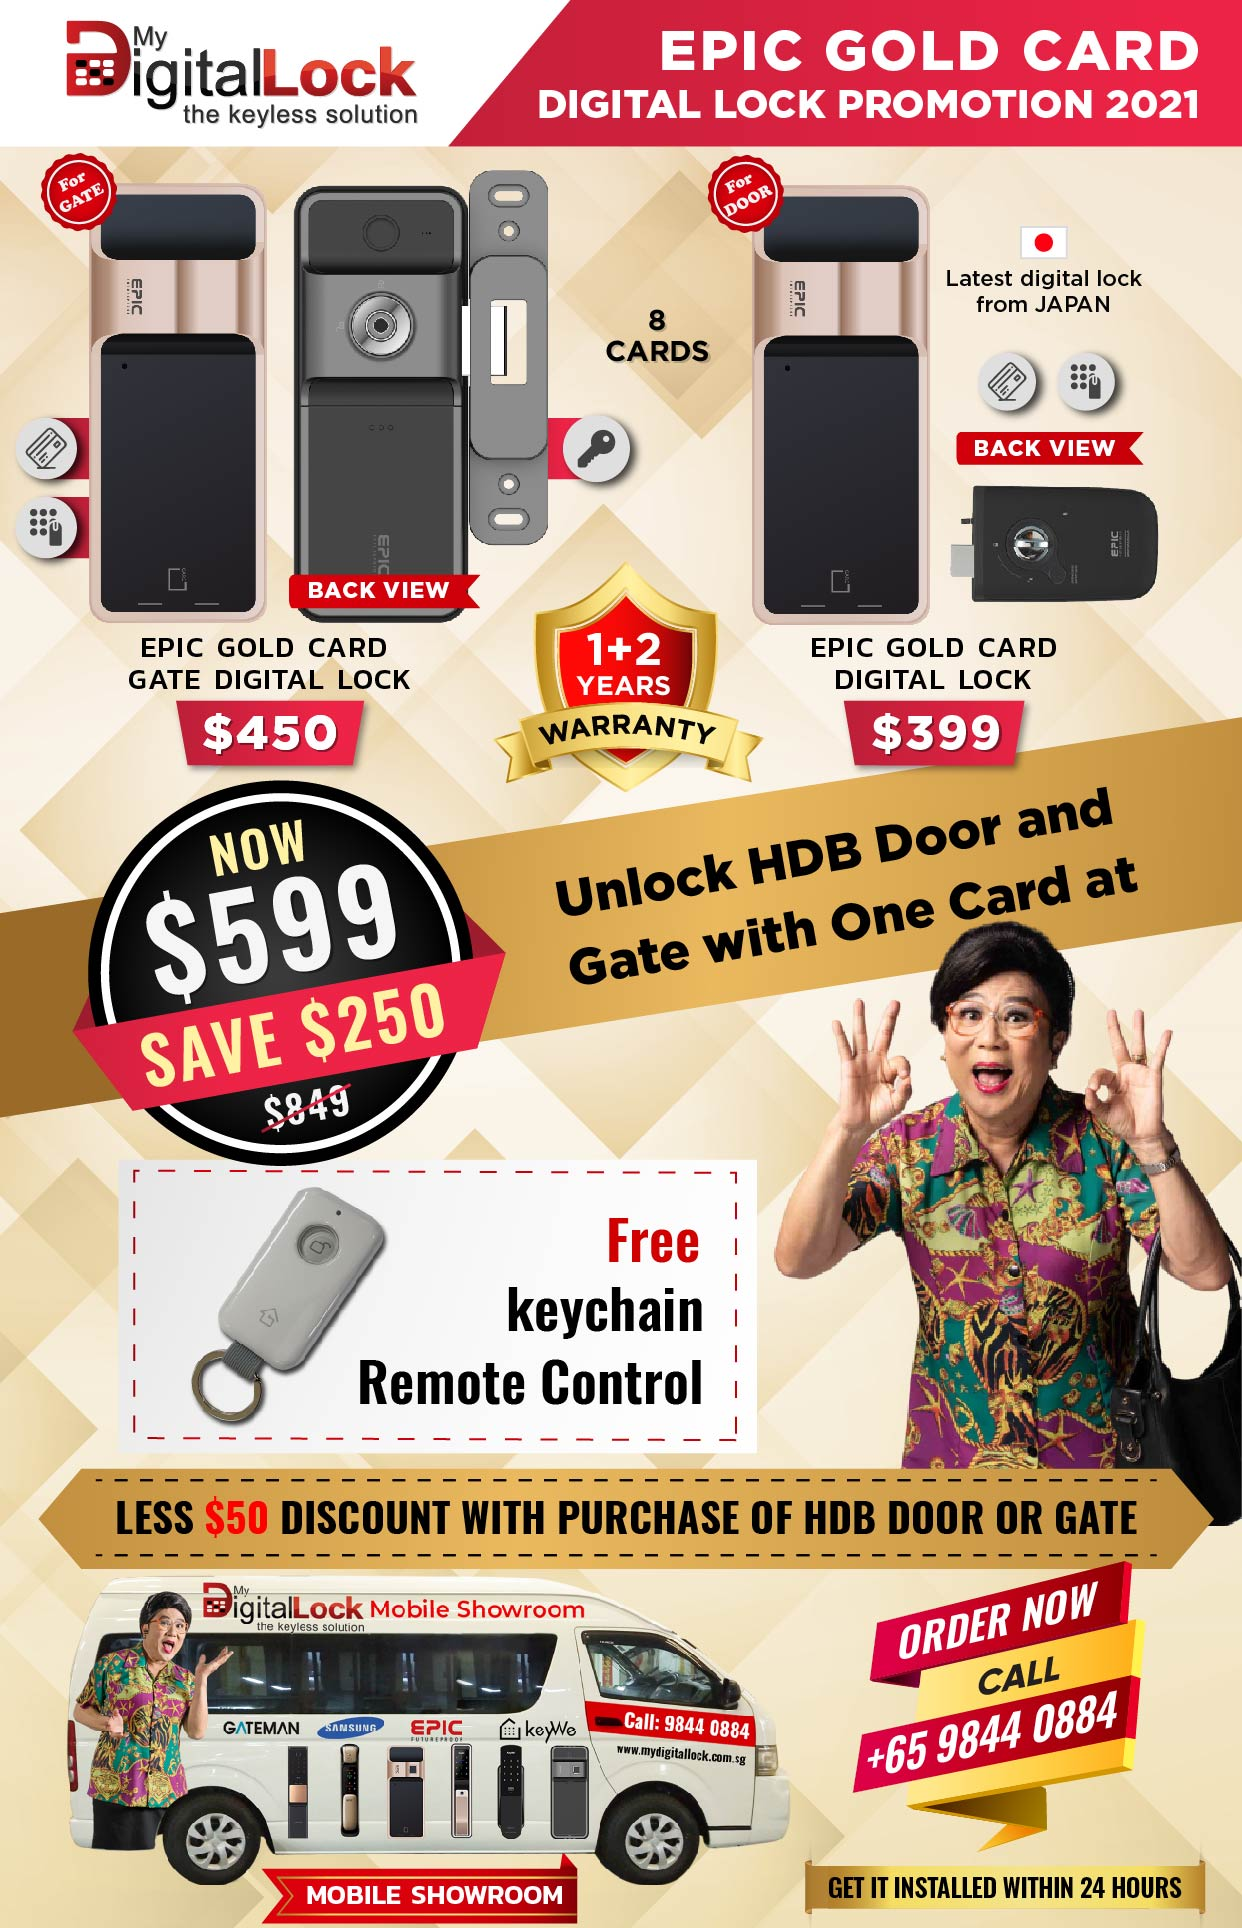 Epic Gold Card Digital Lock Promotion 2021